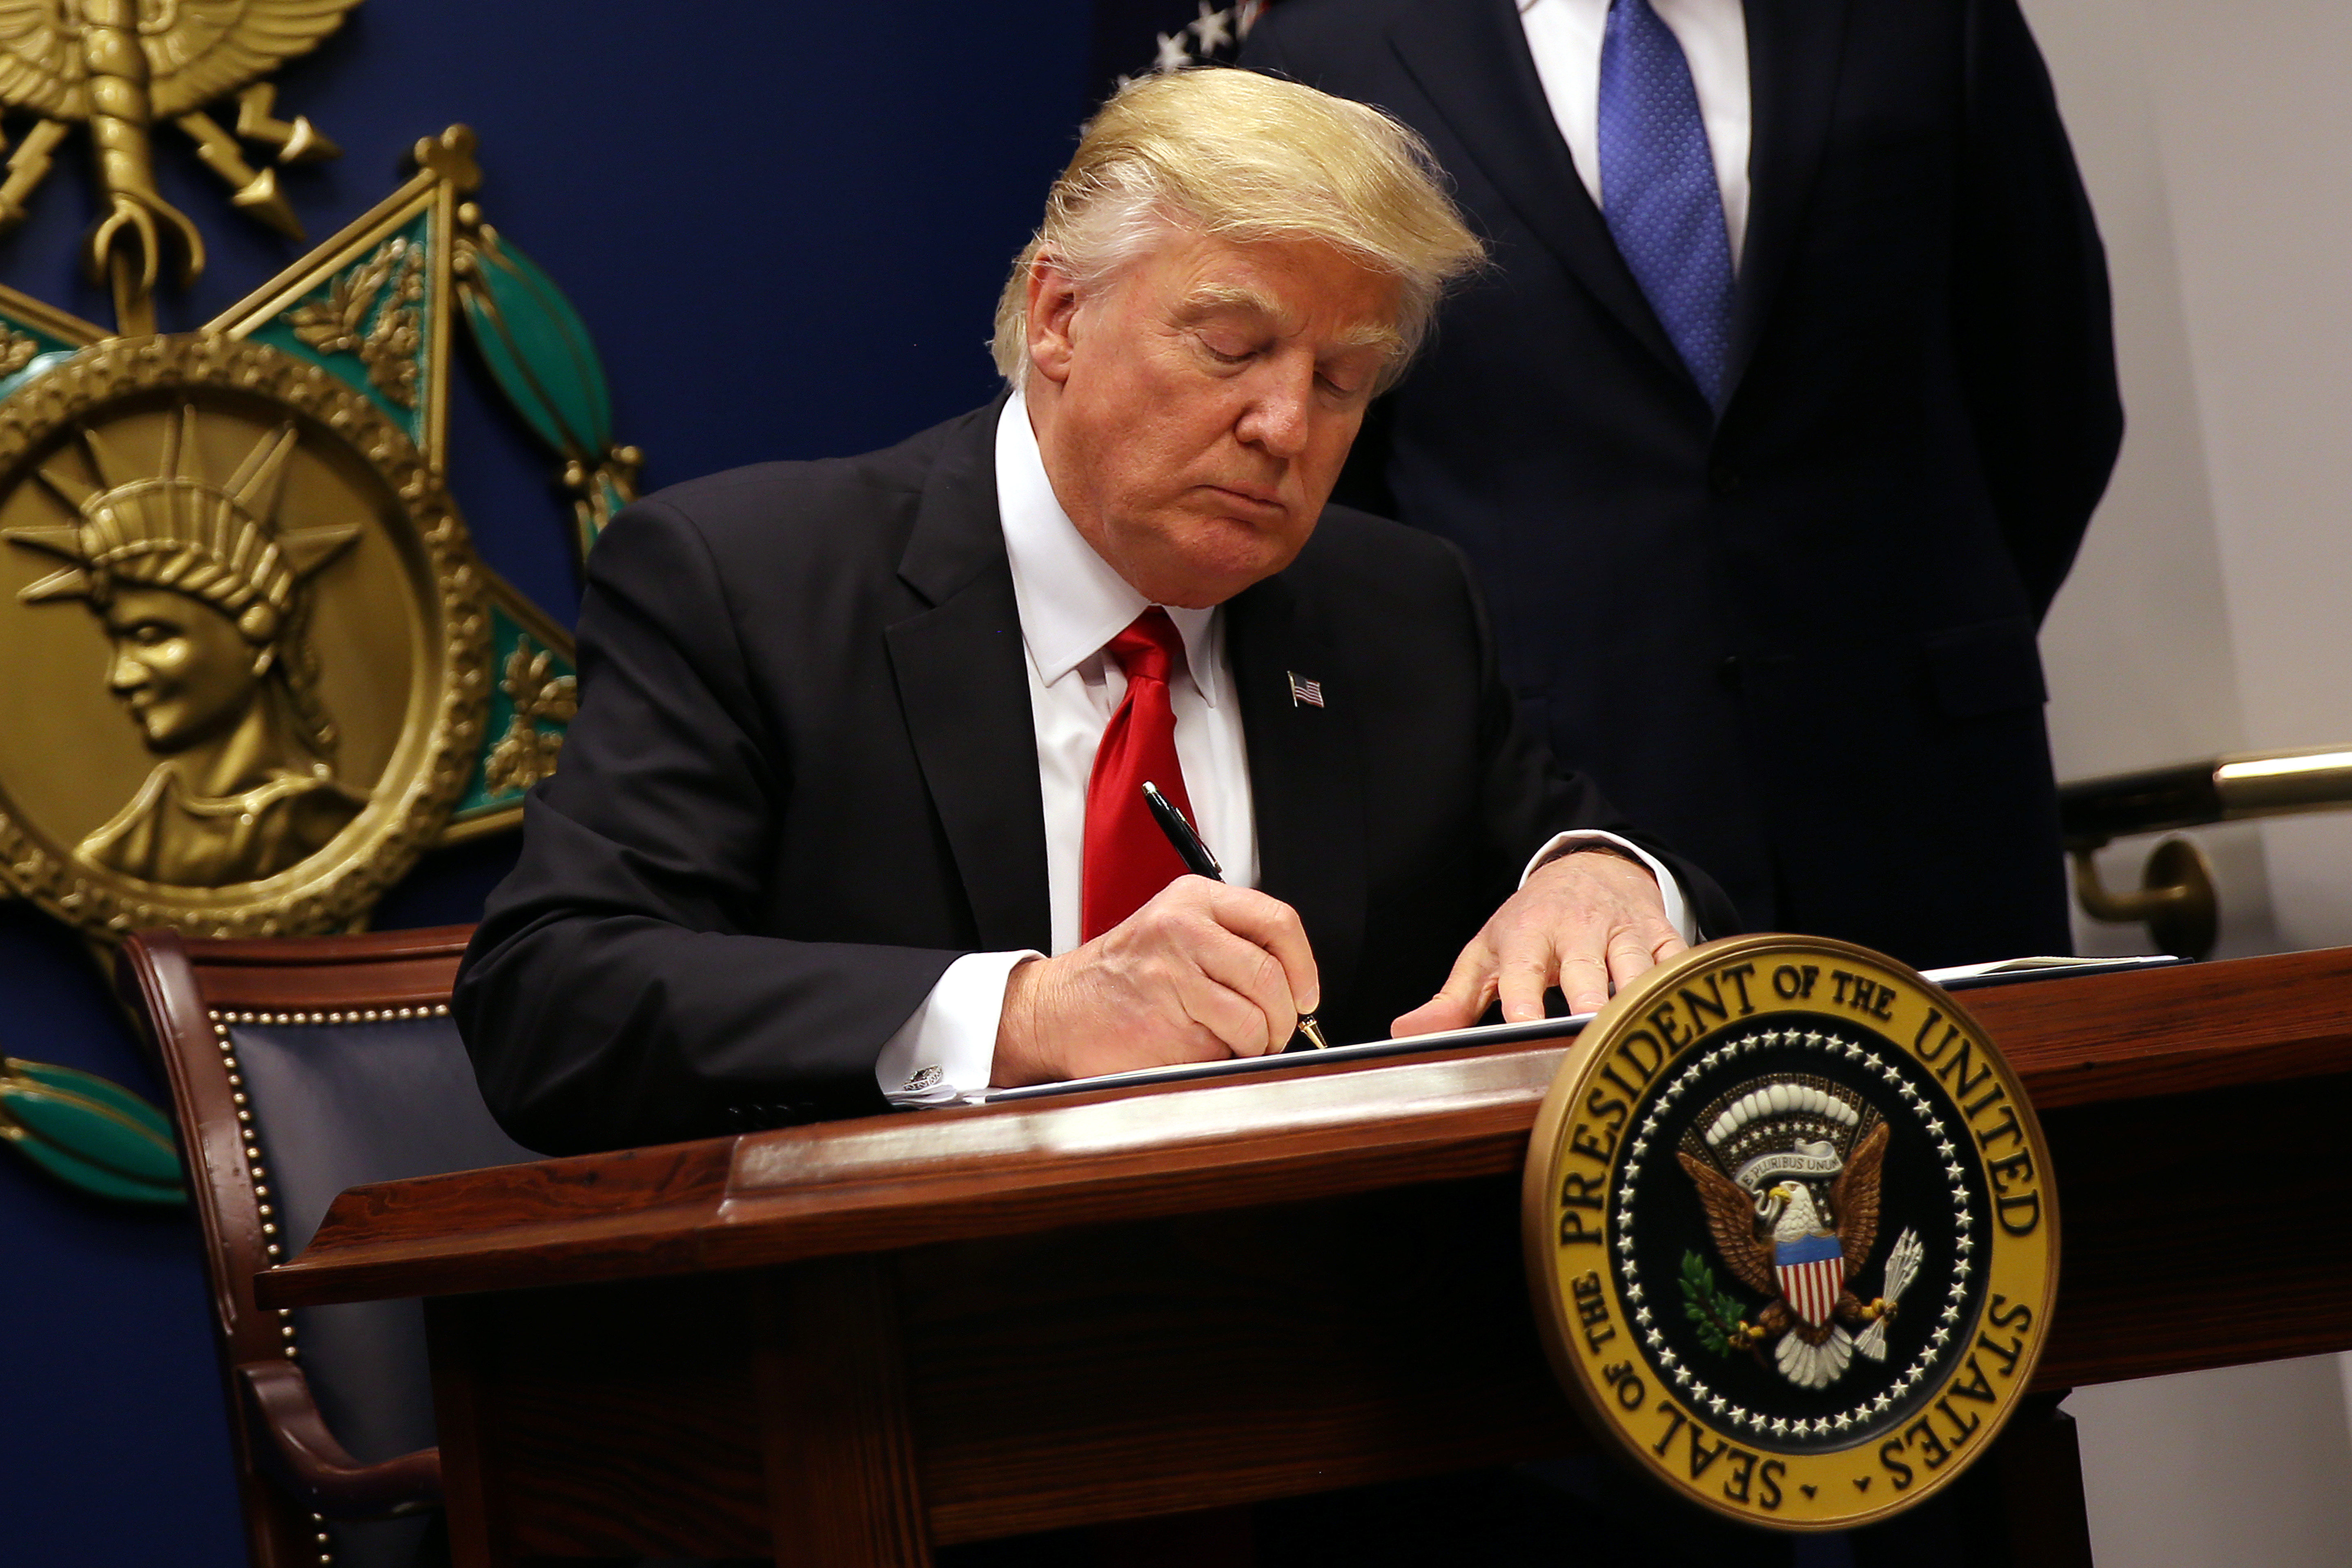 President Donald Trump signs an executive order to impose tighter vetting of travelers entering the United States, at the Pentagon in Washington, D.C.